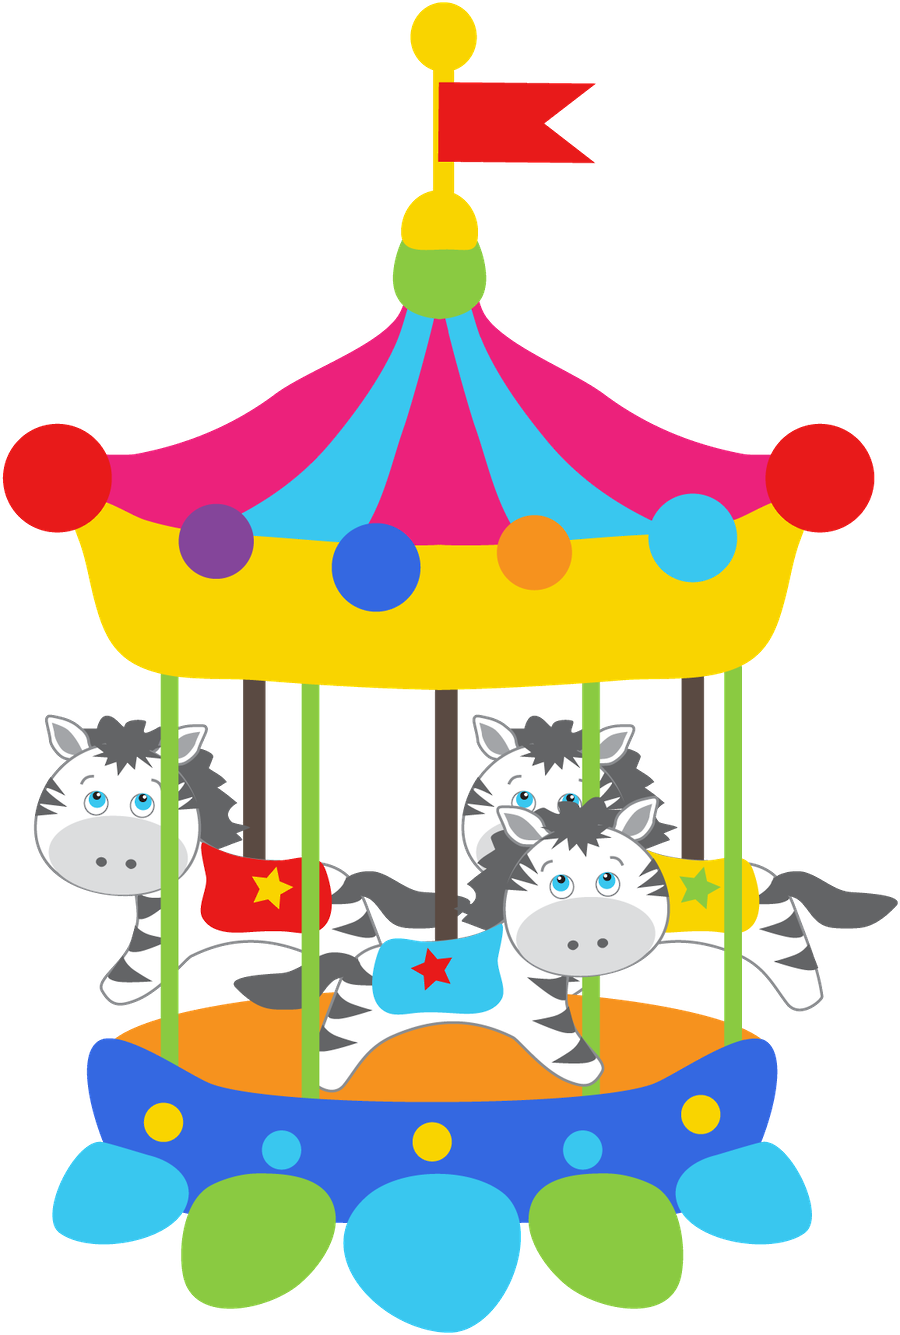 Circus clipart mouse. Circo animals png minus